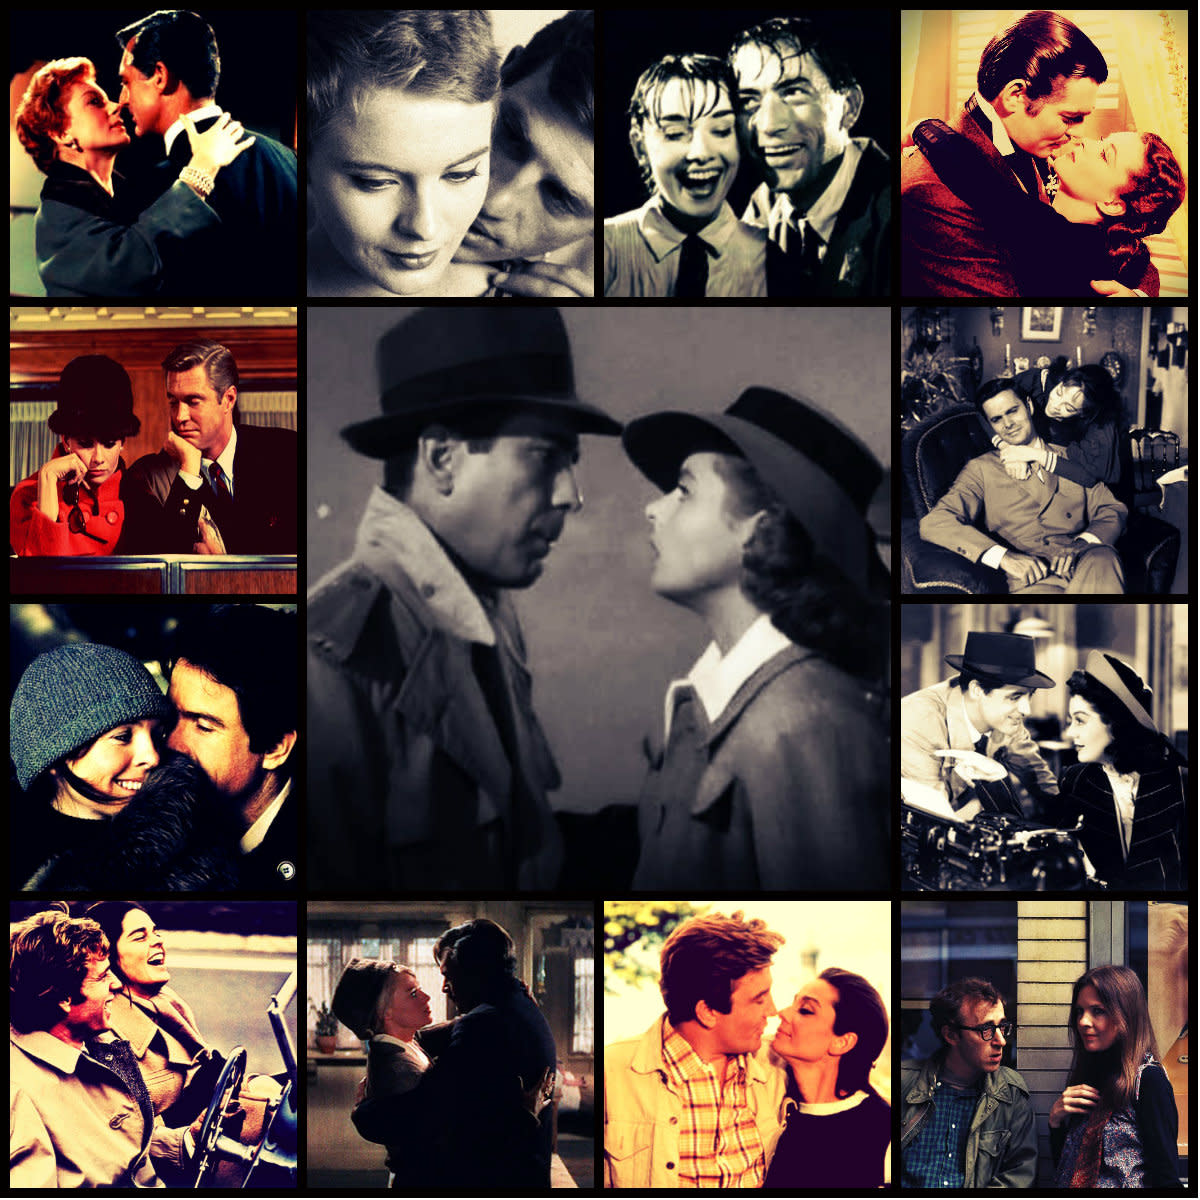 Romantic Moments throughout the history of film-making.